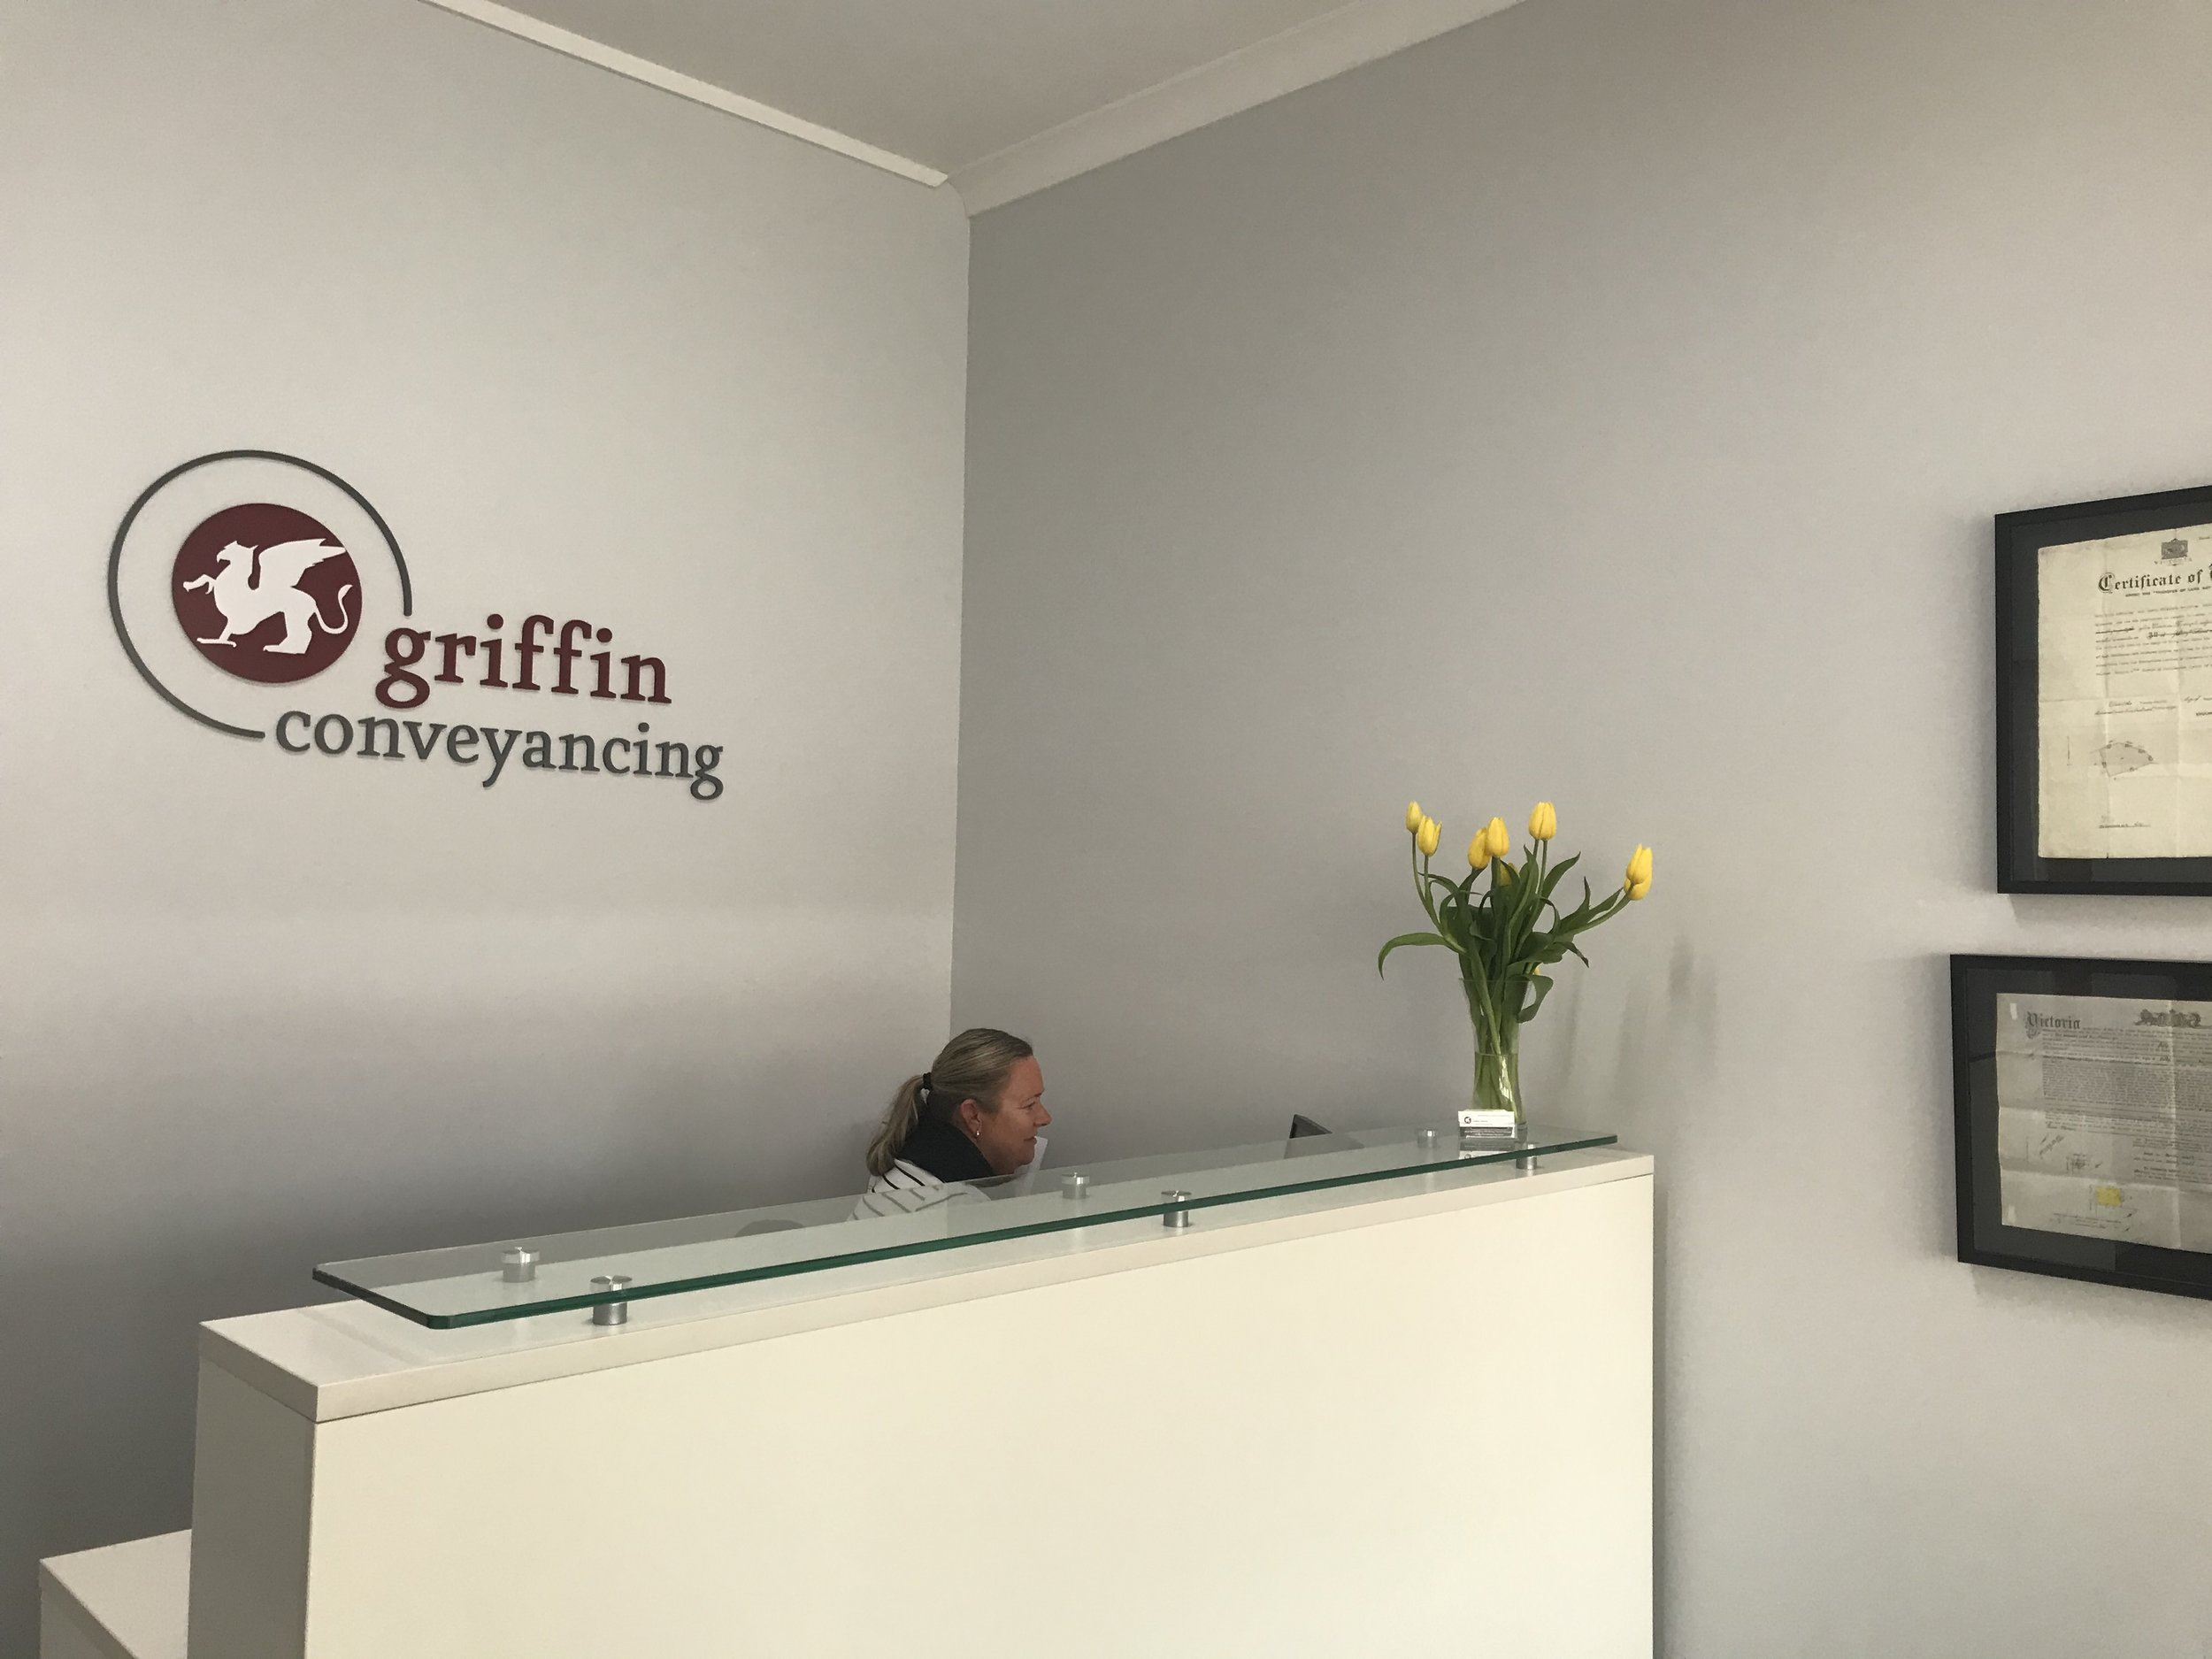 Welcome to Griffin Conveyancing in Castlmaine